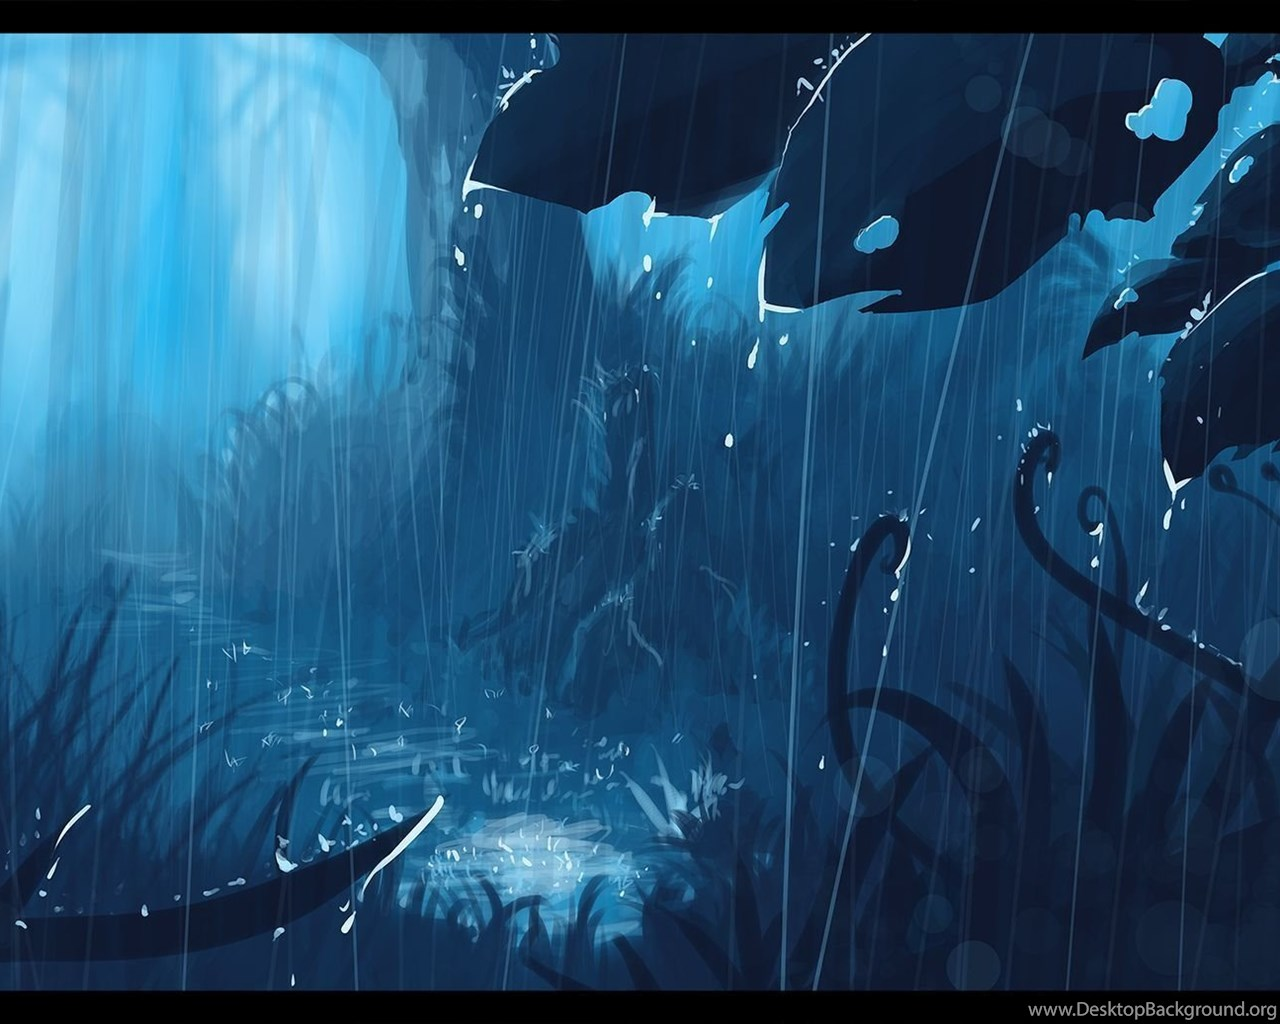 Dark Anime Scenery Wallpapers Free Download 2726 HD